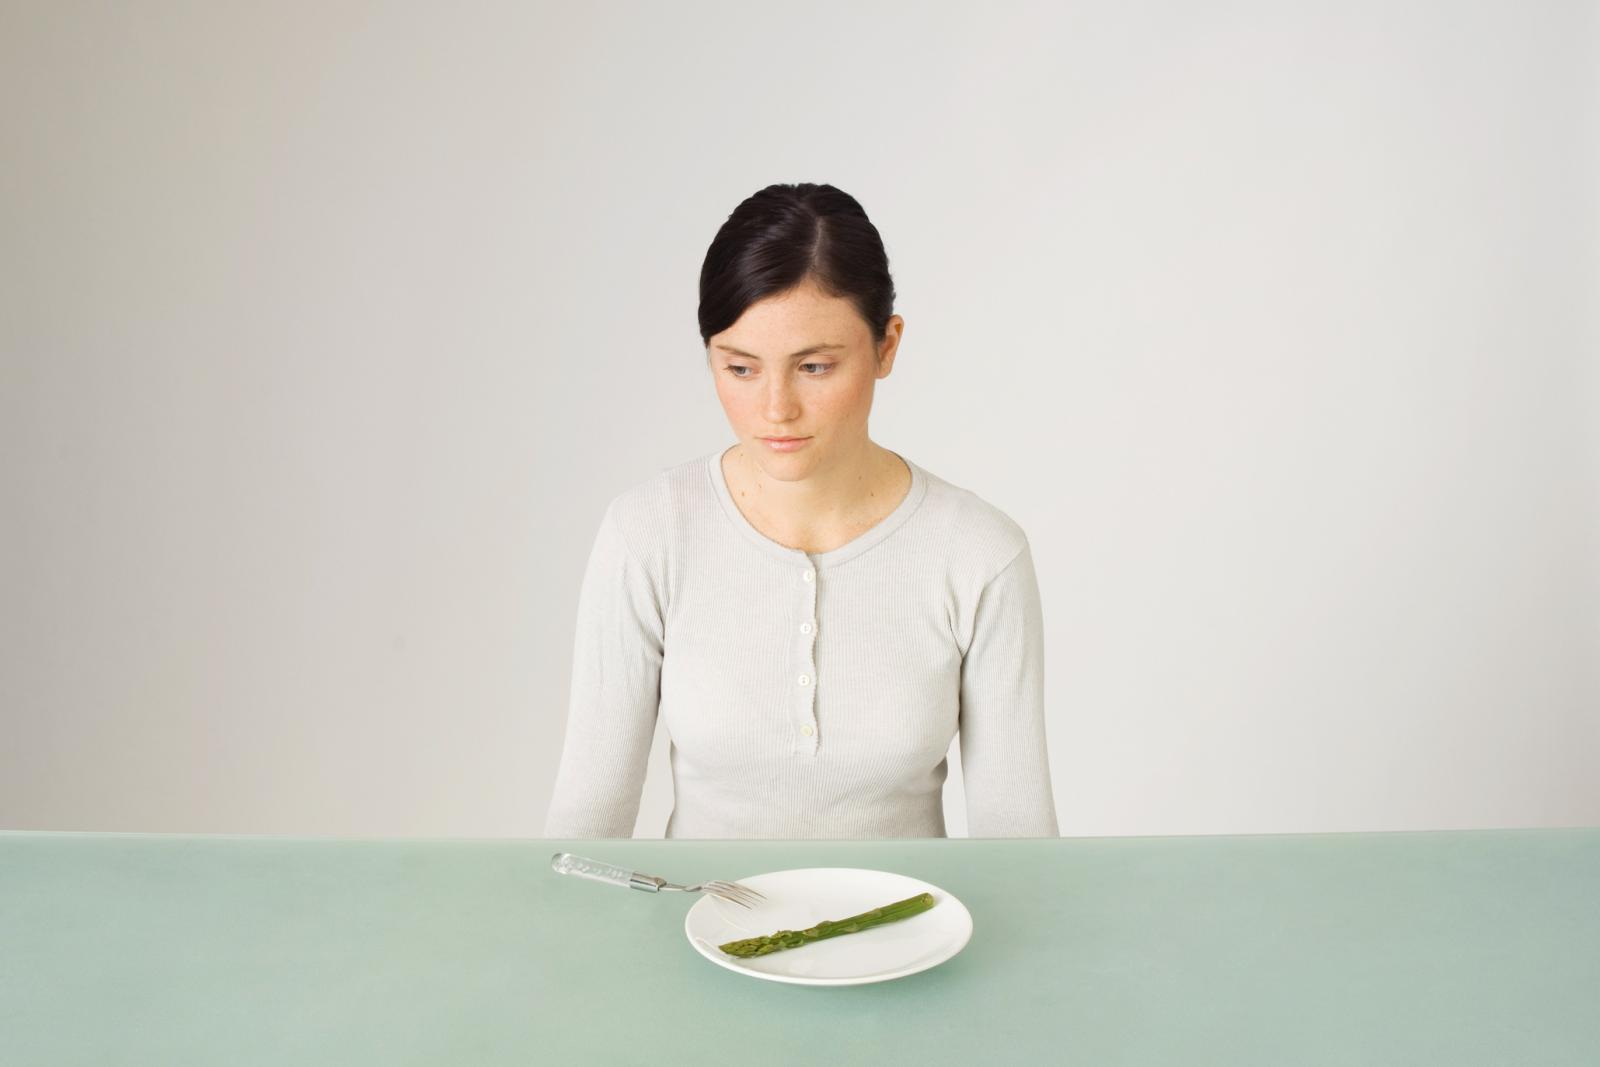 Young woman sitting in front of plate with single asparagus